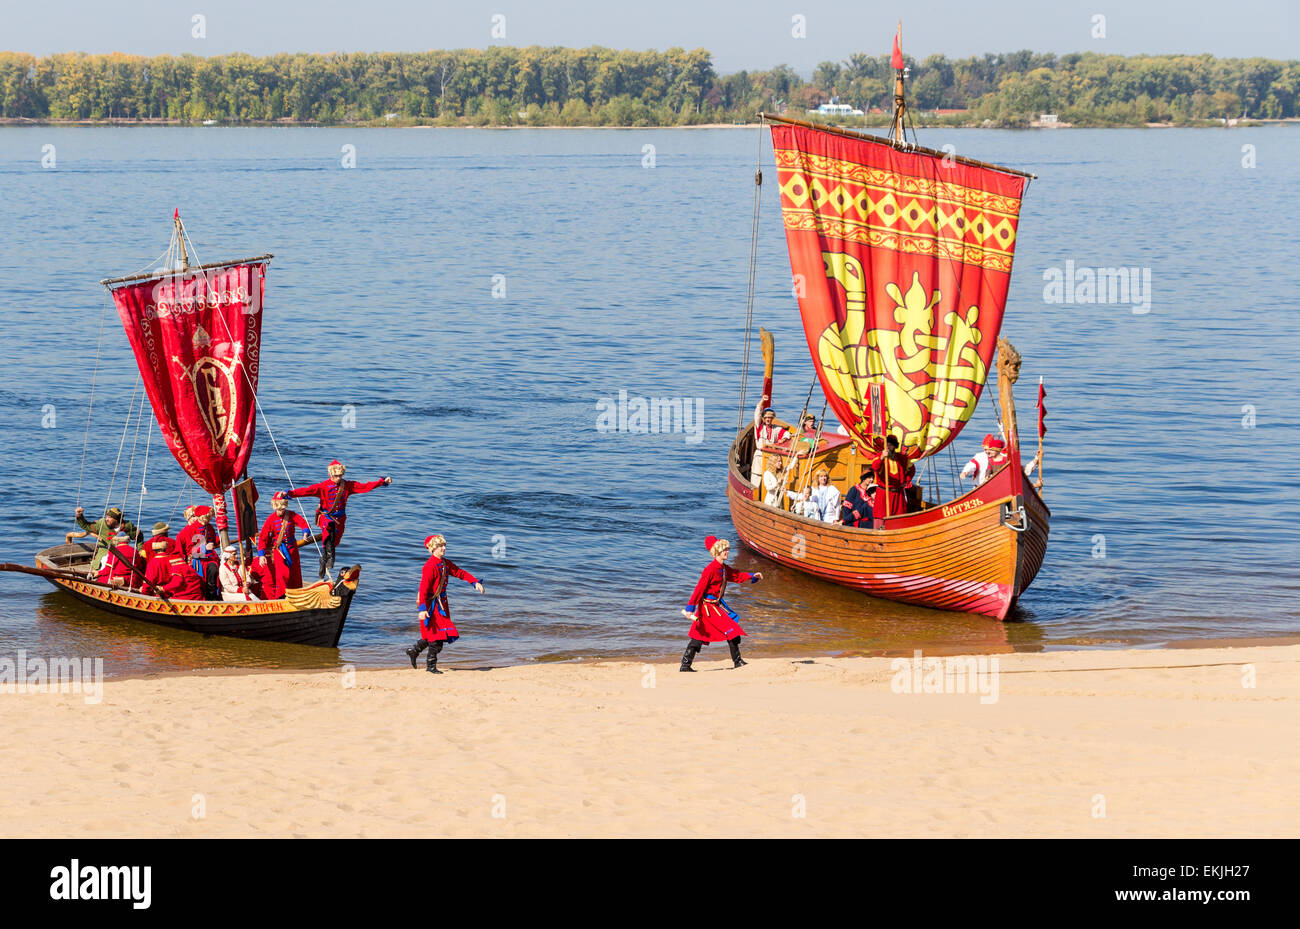 Old sailing ships floating on the river Volga on sunny day - Stock Image